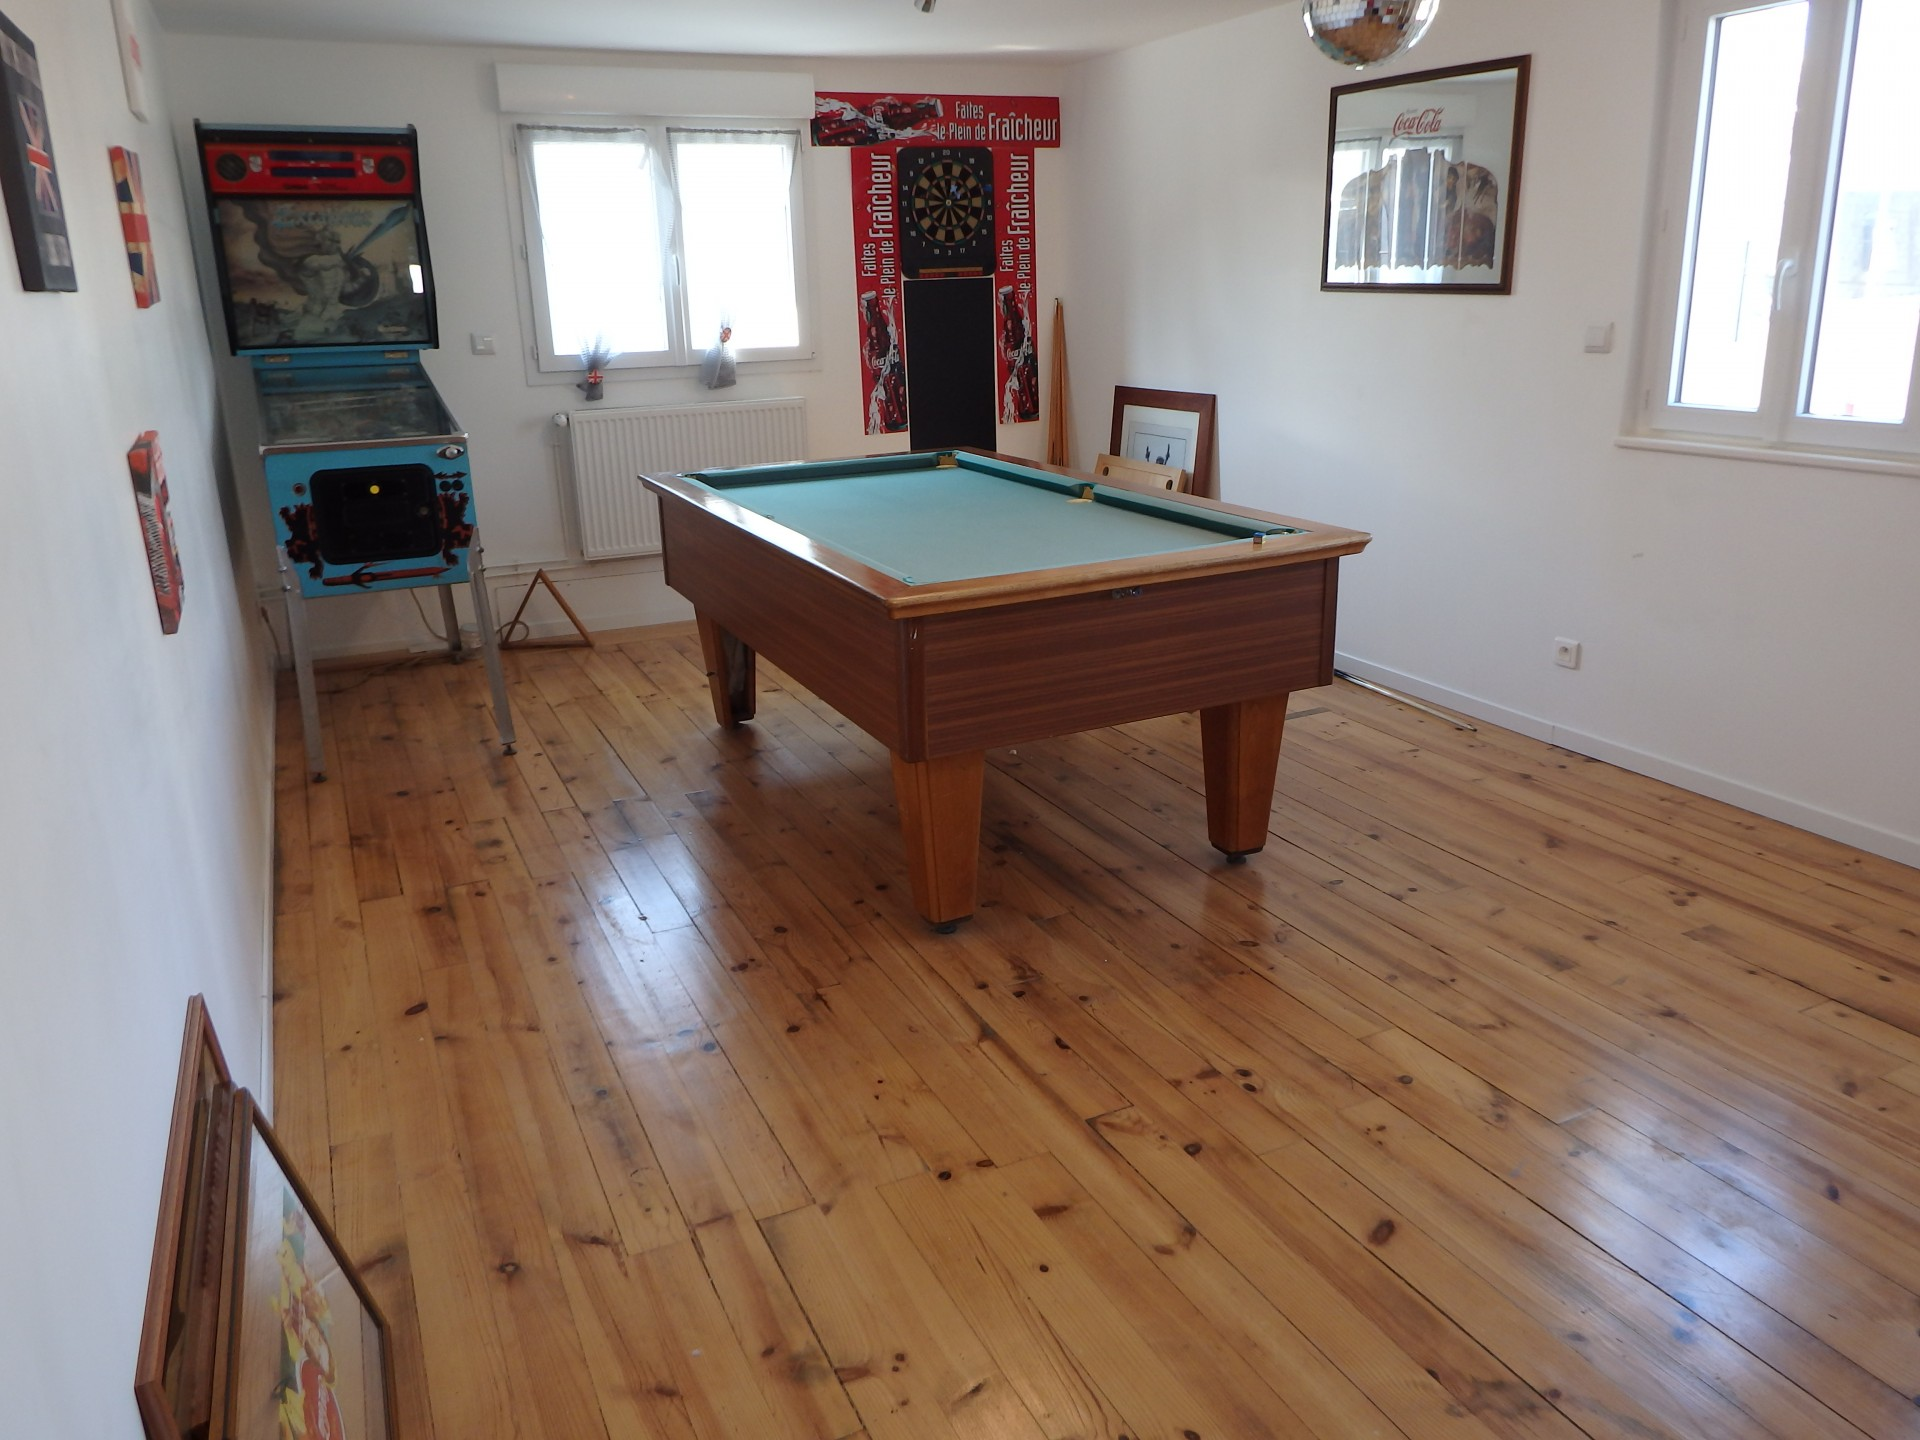 Billard_guestshouse_24h_lemans_b&b